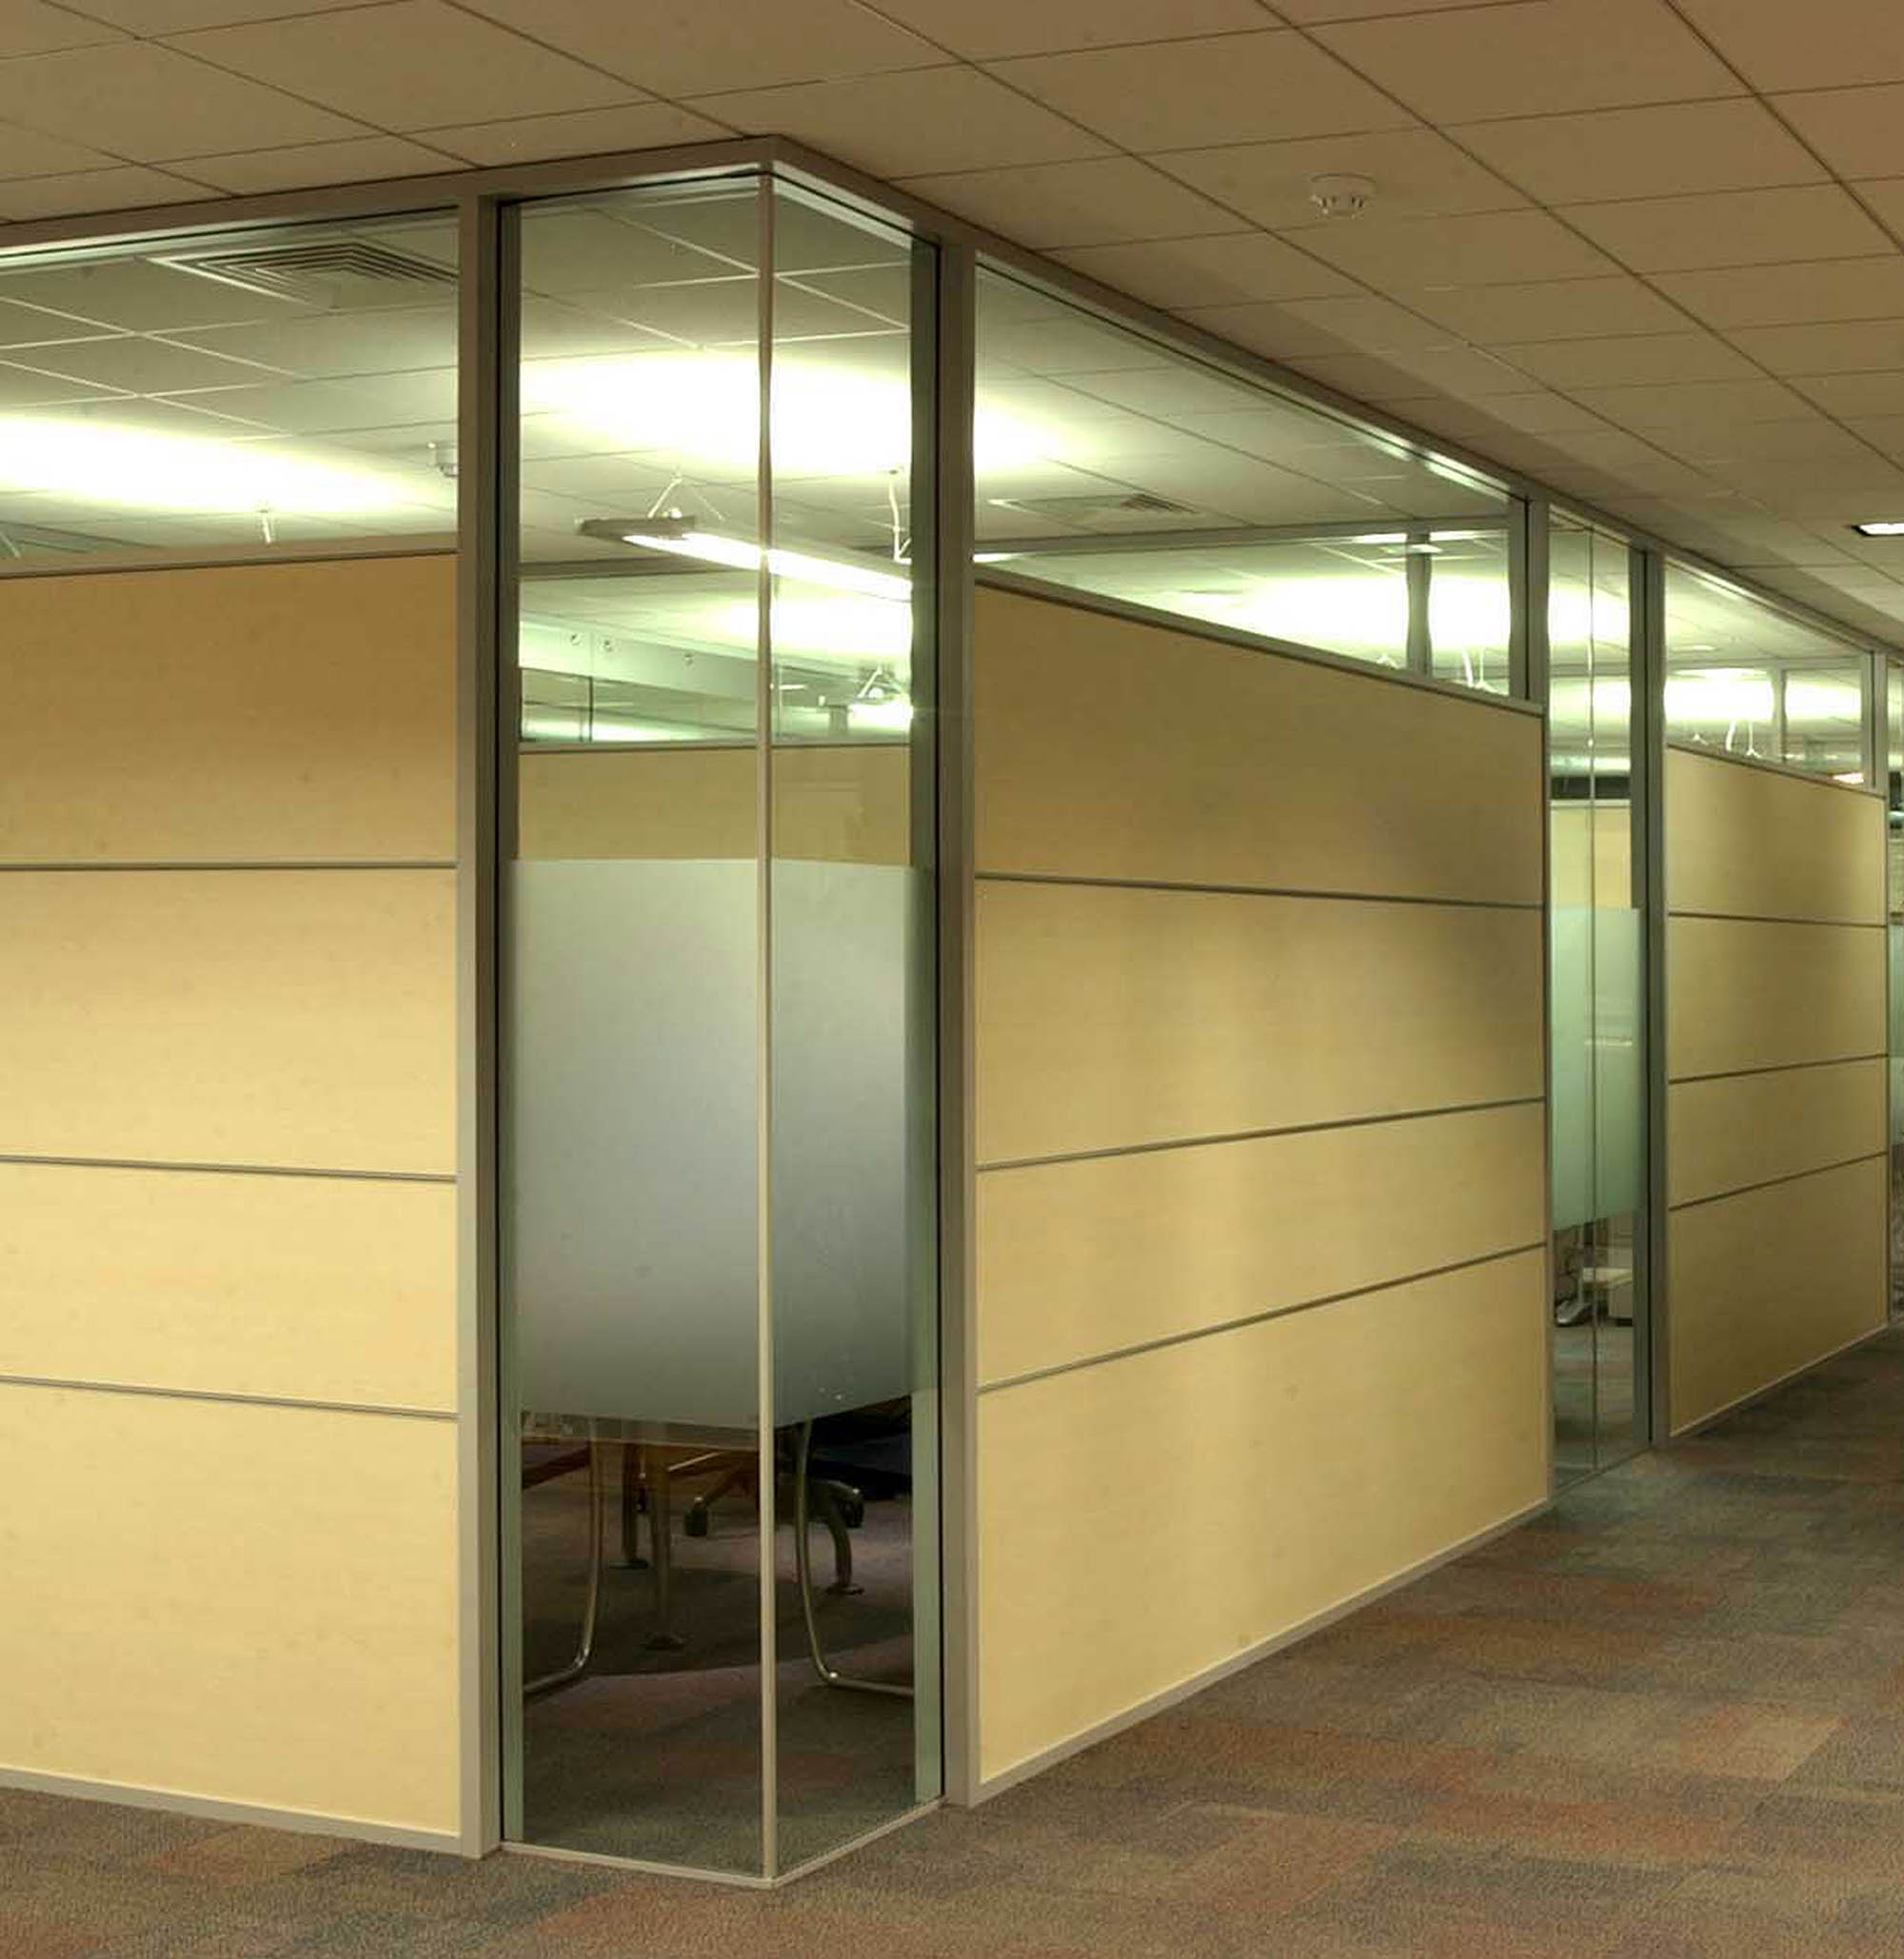 Glass partition designs glass wall systems glass for Large glass wall